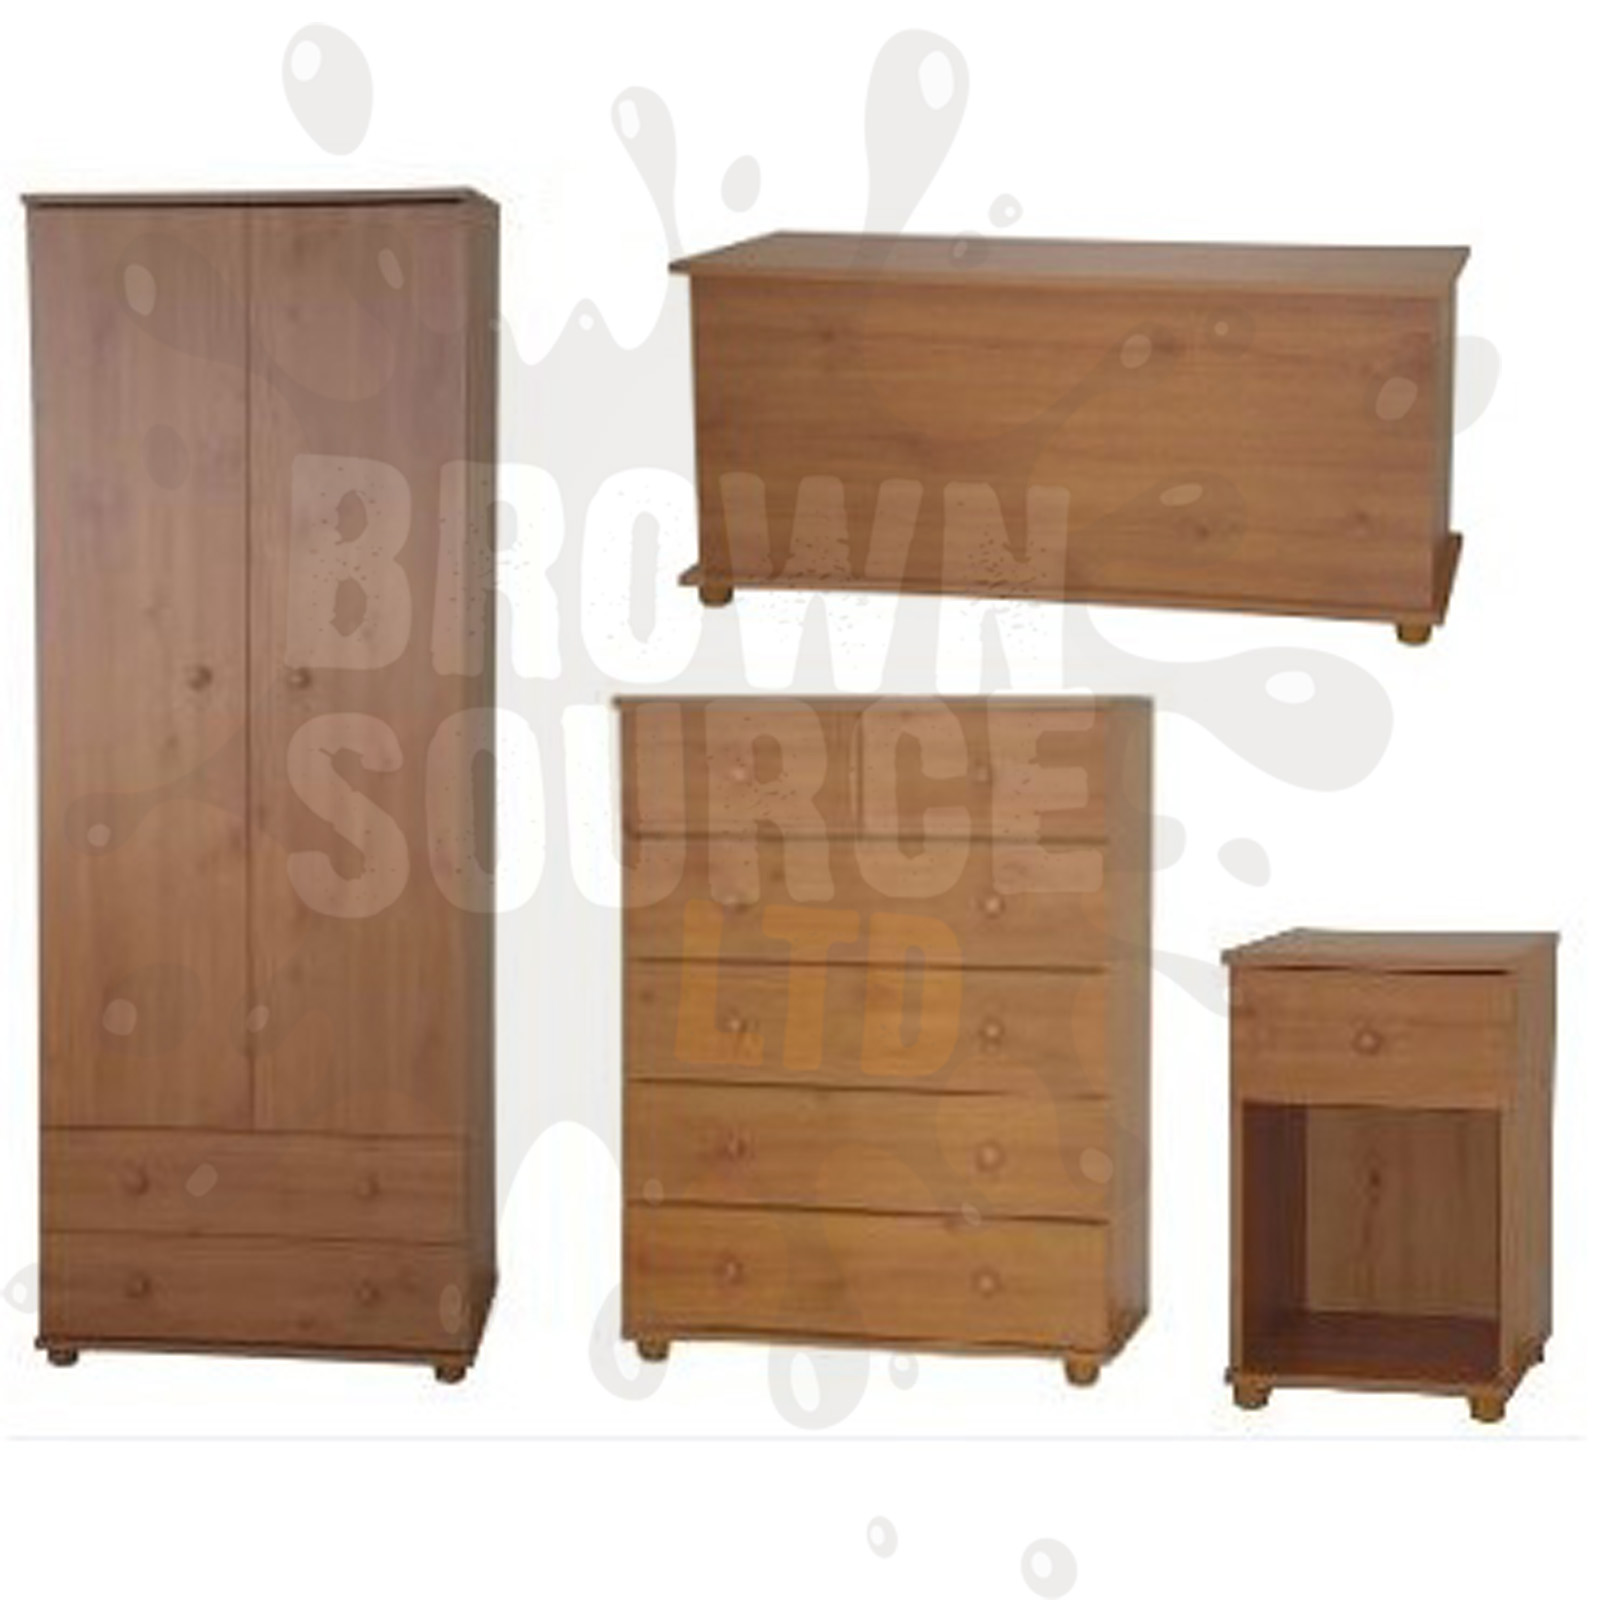 #91643A Pine Chest Of Drawers Wardrobe Bedside Table Ottoman Storage Toy Chest  with 1600x1600 px of Brand New Pine Bedroom Chest Of Drawers 16001600 pic @ avoidforclosure.info